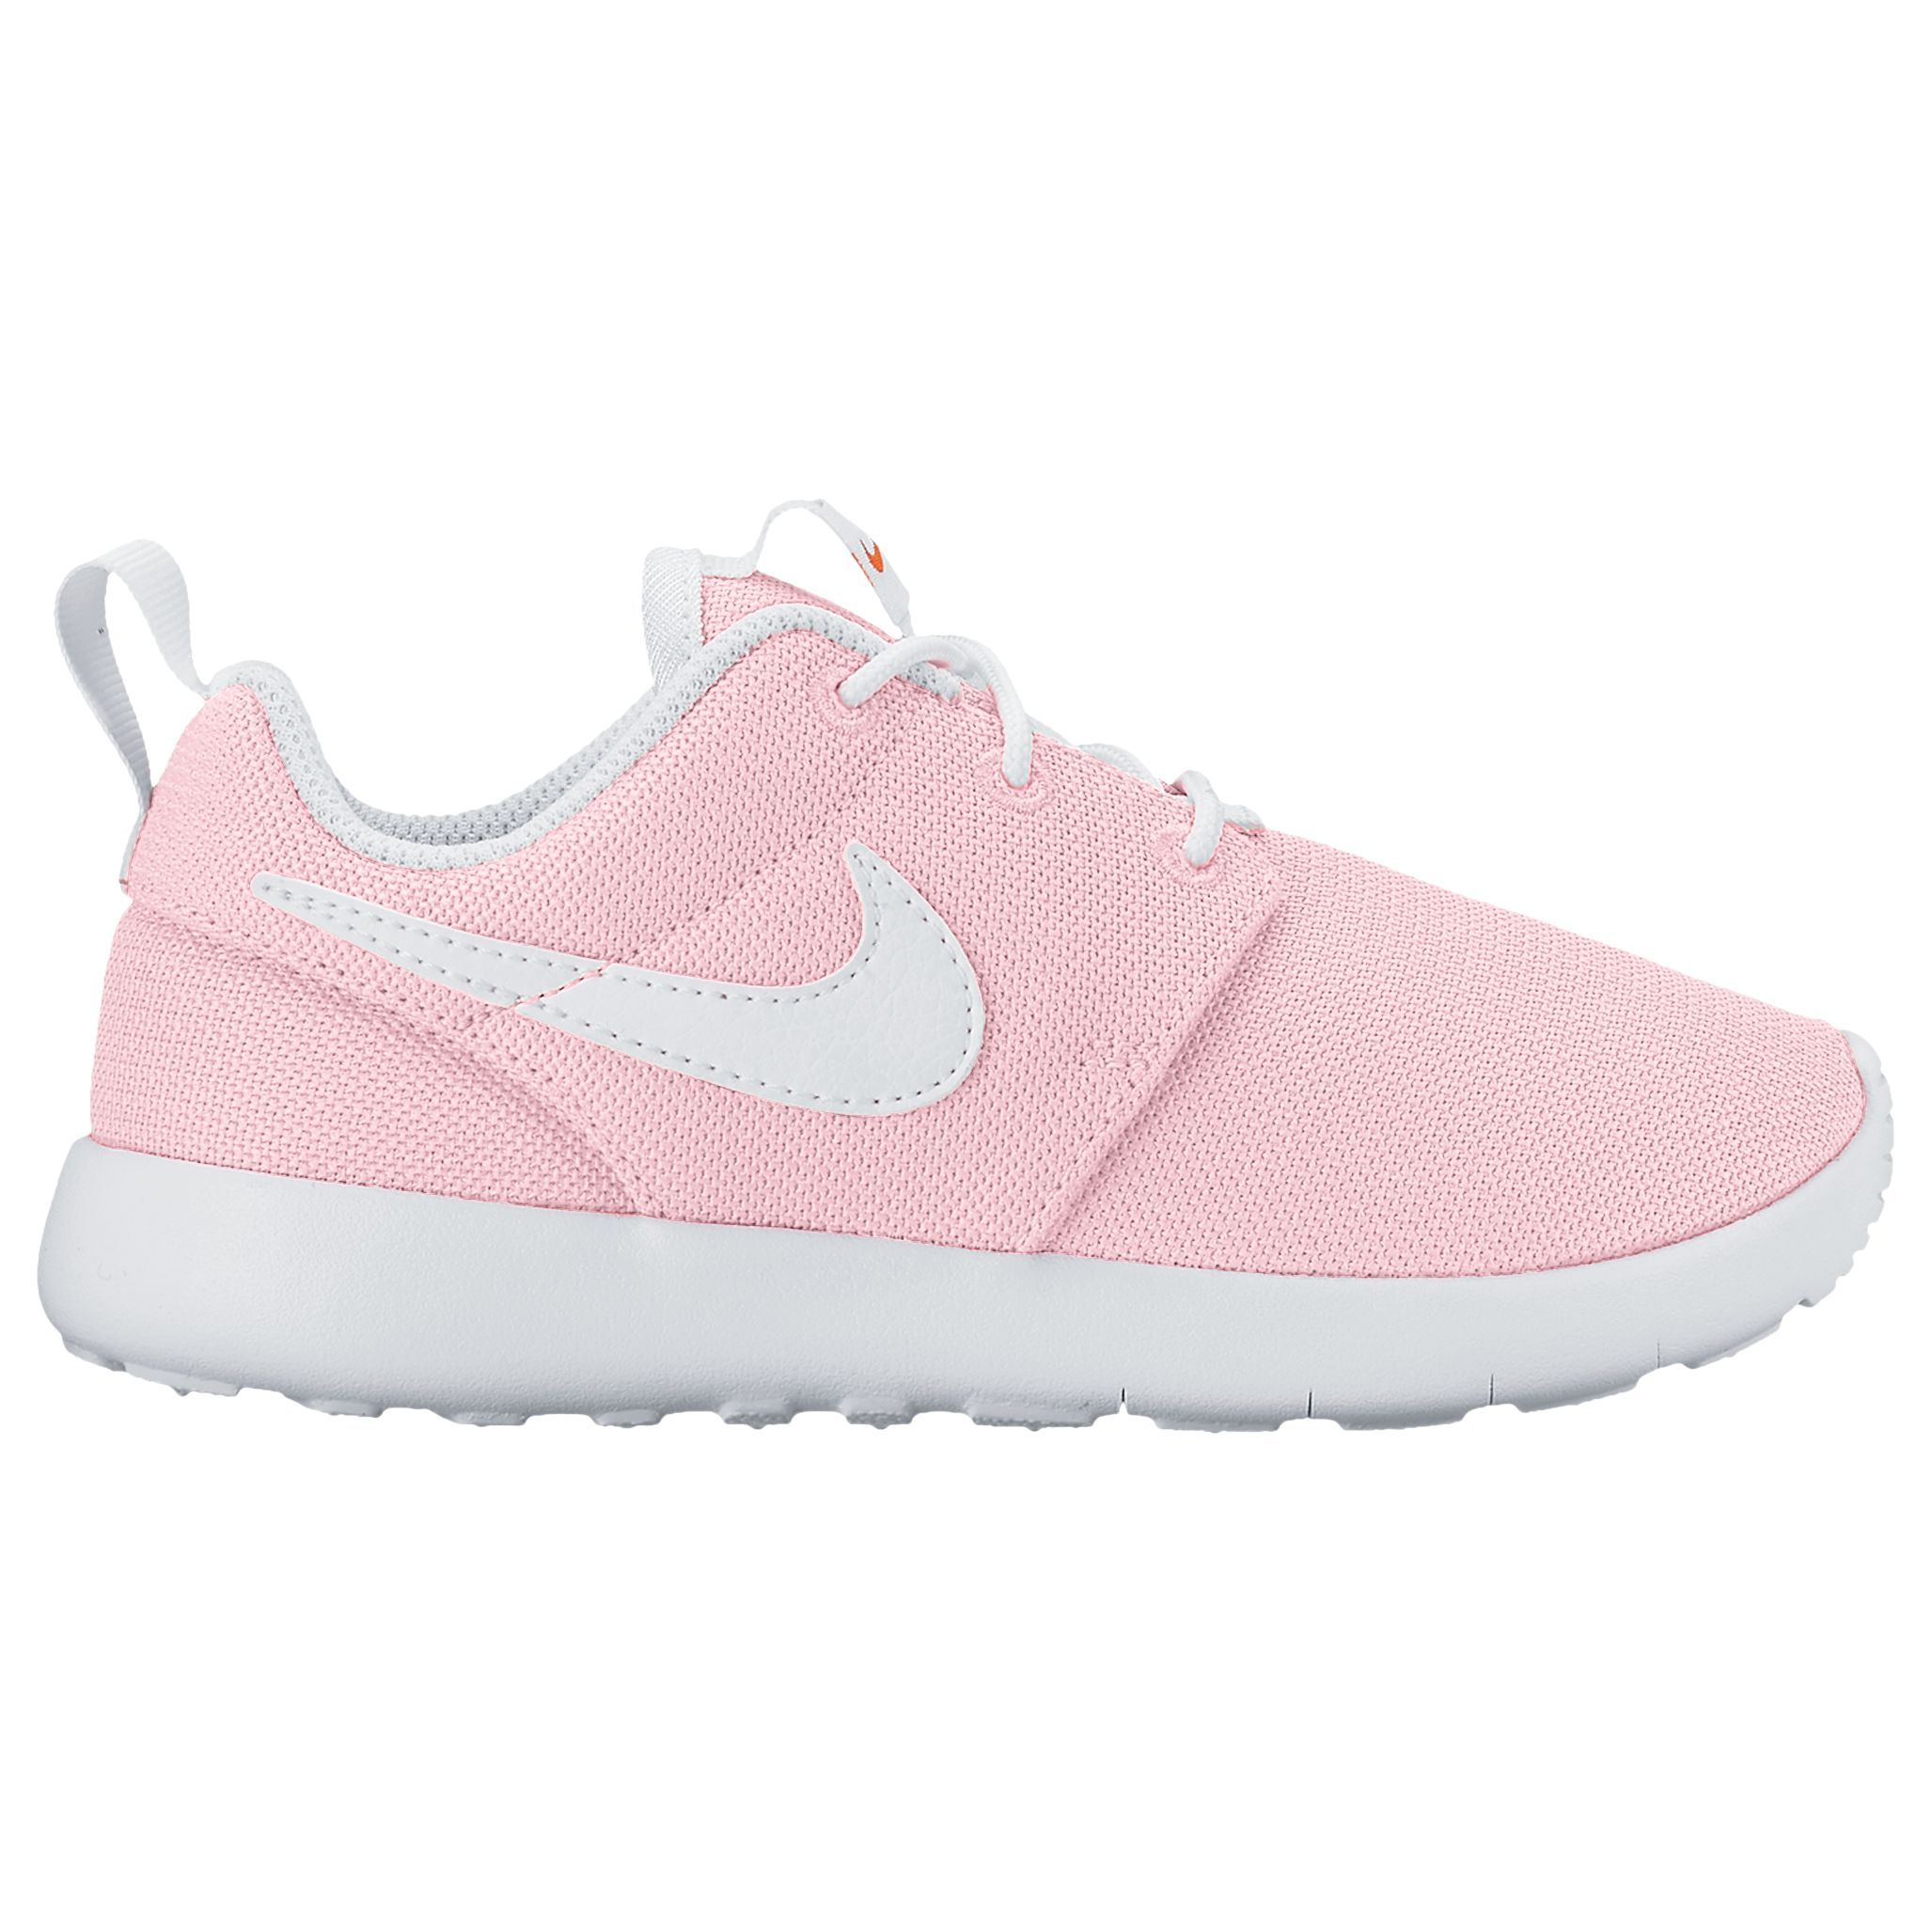 Arqueólogo sombrero Evento  Nike Children's Laced Roshe One Trainers, Light Pink at John Lewis &  Partners